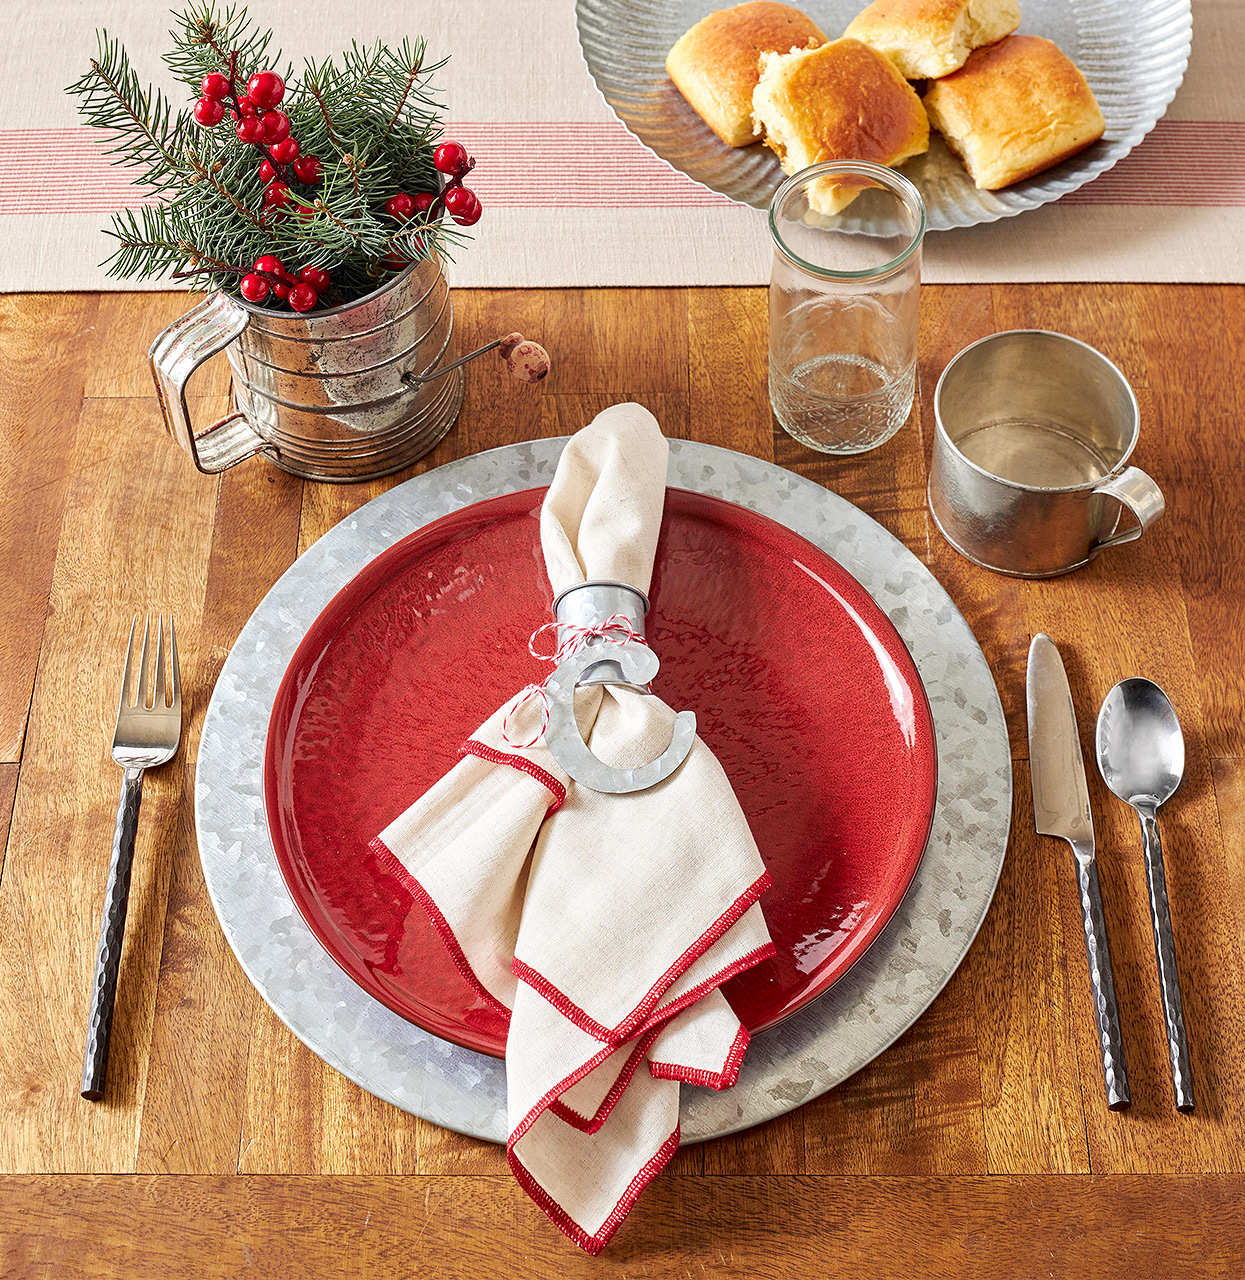 camp-inspired Christmas place setting with metal charger and sifter